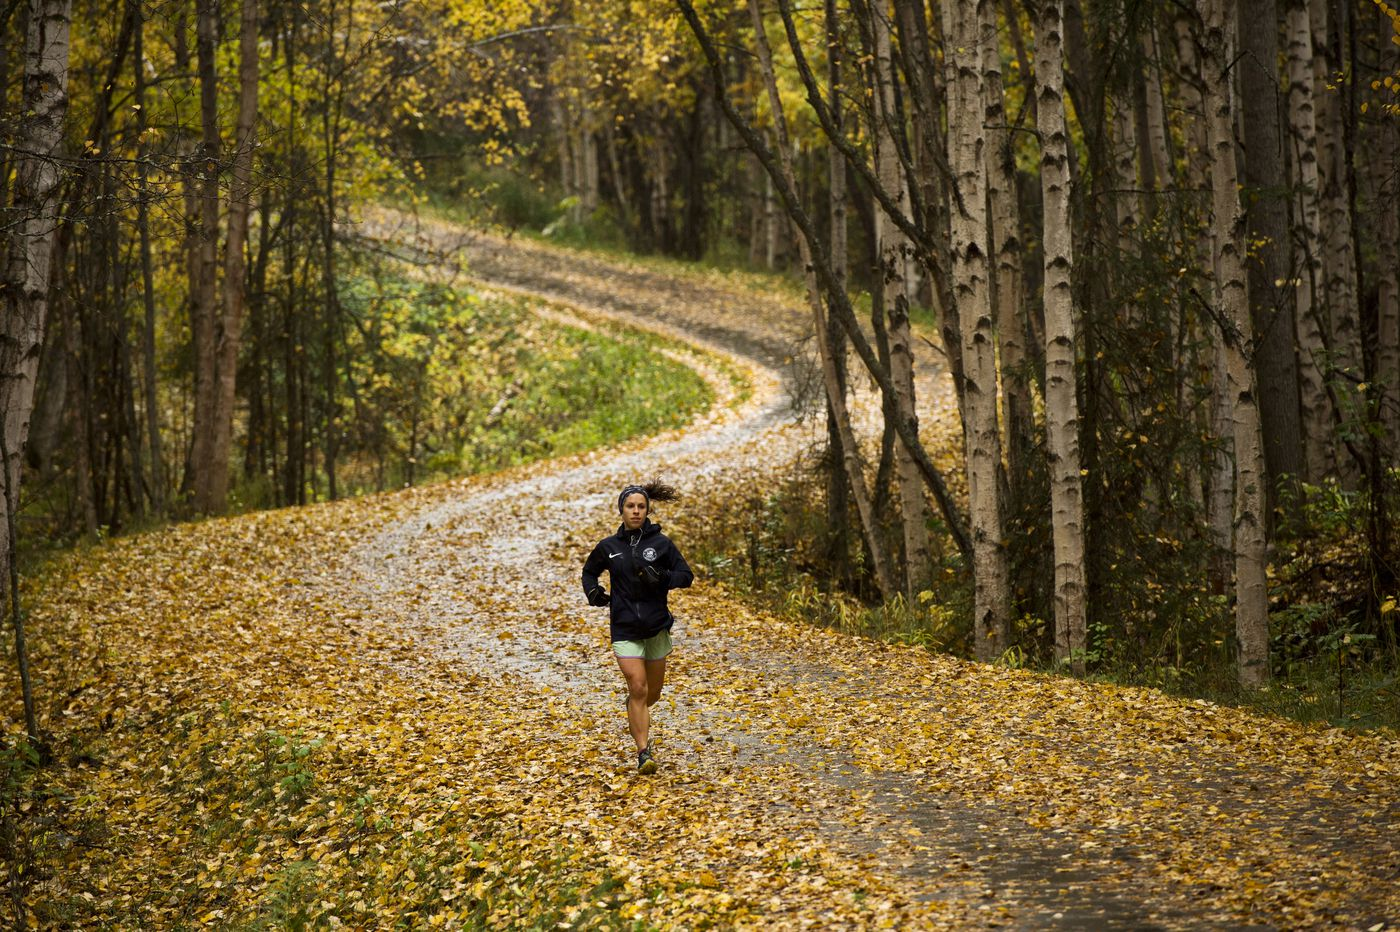 Rosie Frankowski runs along the Tony Knowles Coastal Trail near Earthquake Park on Monday, September 28, 2020. Frankowski, from Minneapolis, is a member of the Alaska Pacific University's elite cross country ski team and a member of the 2018 U.S. Olympic team in Pyeongchang. (Marc Lester / ADN)